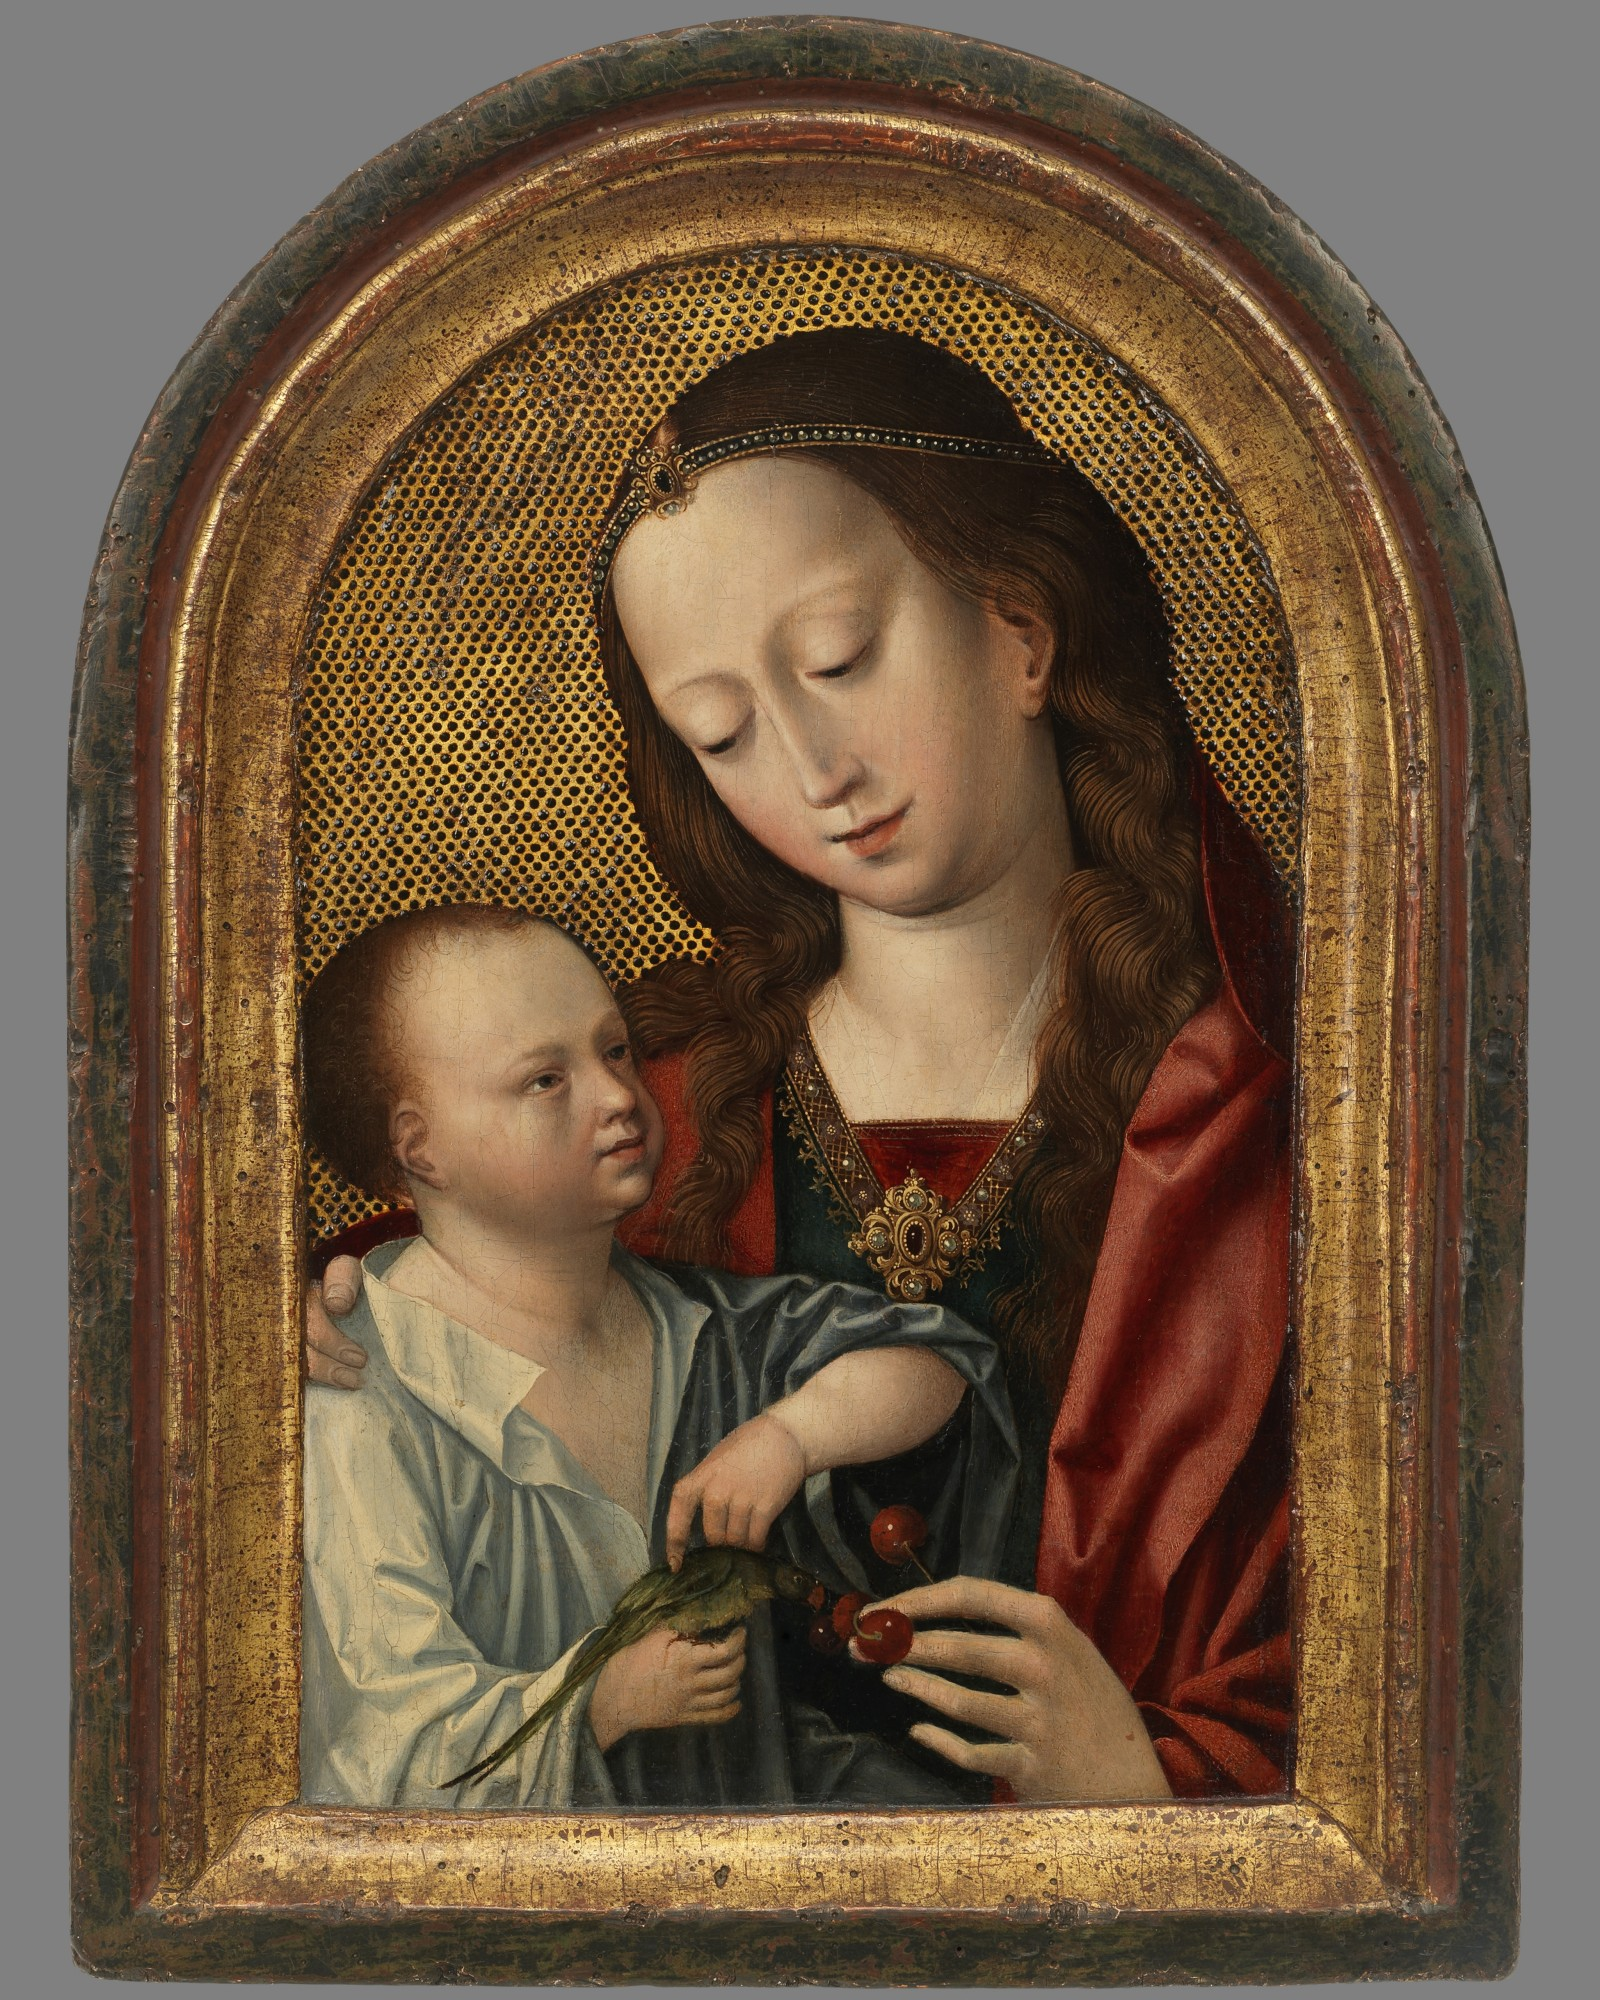 The Virgin and Child, The Master of the Magdalene Legend (active c. 1481 – c. 1513), c. 1500